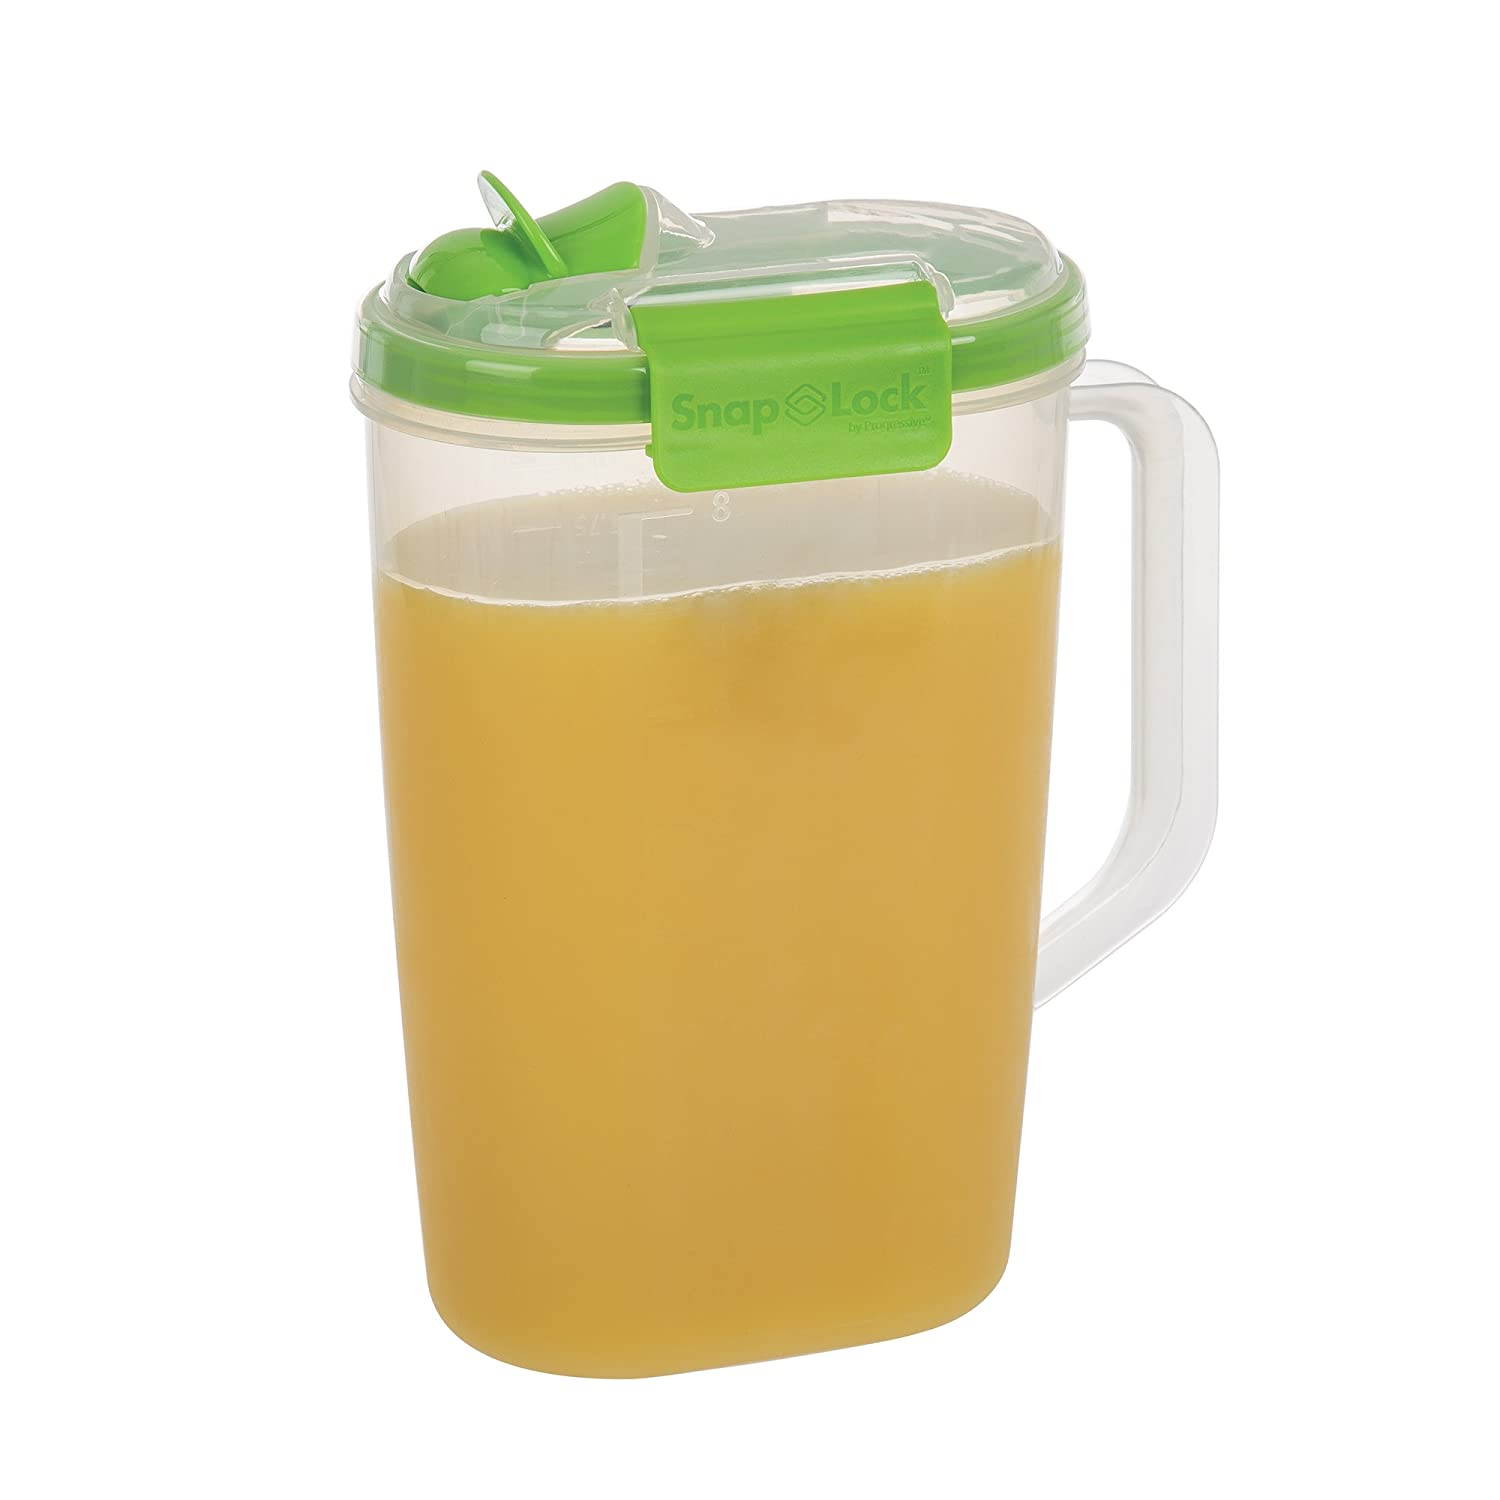 SnapLock by Progressive Juice Pitchers 2.0 Liter Container - Green, SNL-1016GEasy-To-Open, Leak-Proof Silicone Seal, Snap-Off Lid, Stackable, BPA FREE